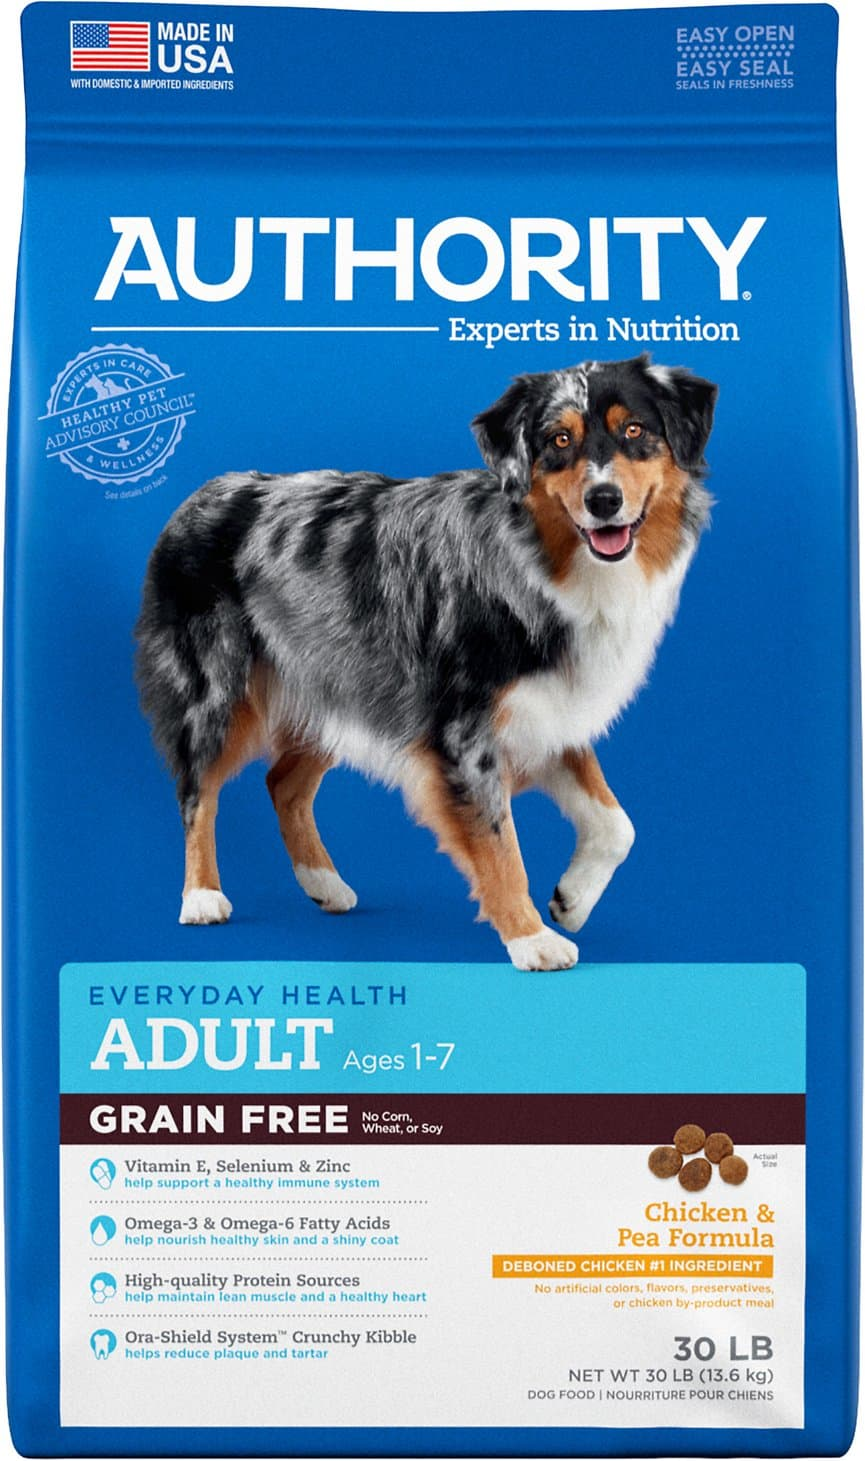 Authority Dog Food Coupons, Reviews and Recalls 2021 11